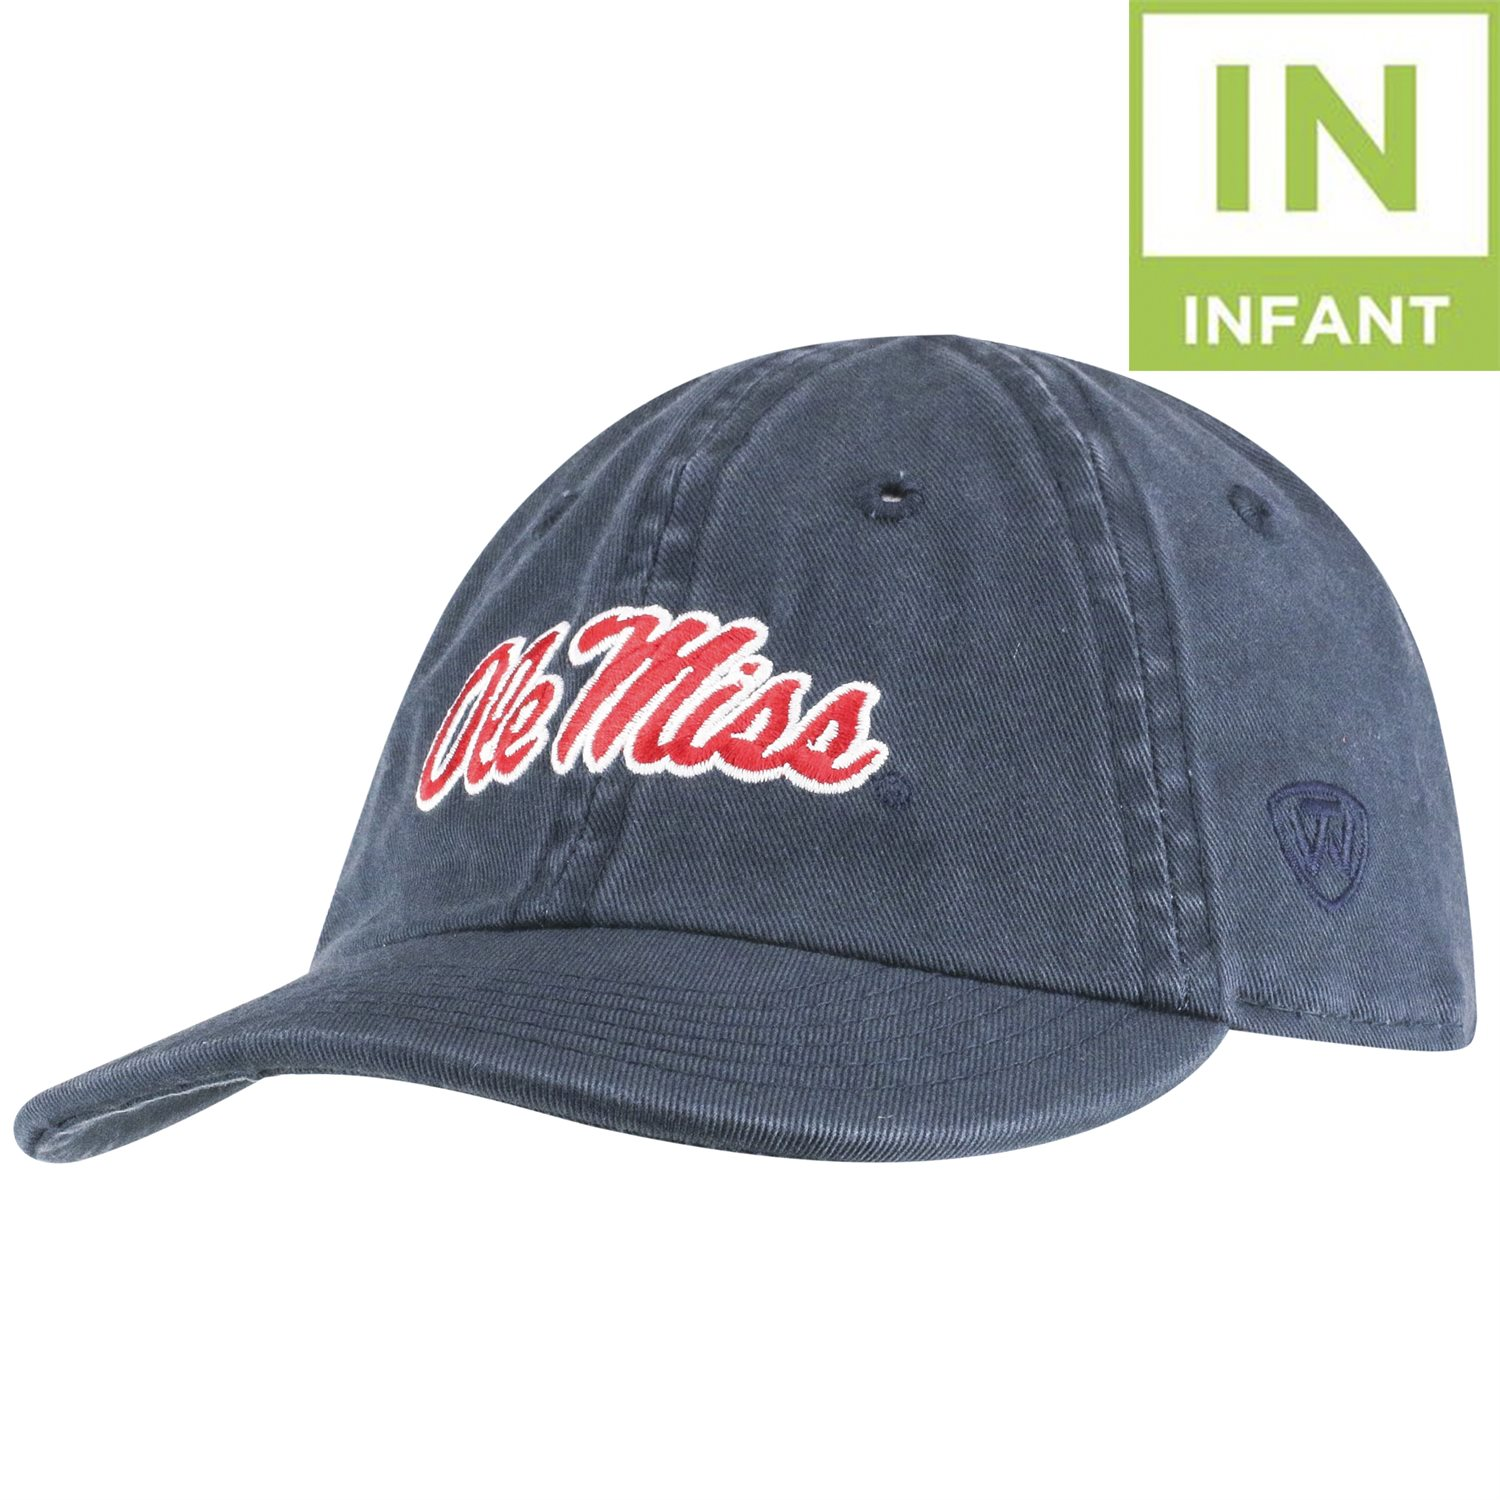 Mini Me Navy Script Infant Hat